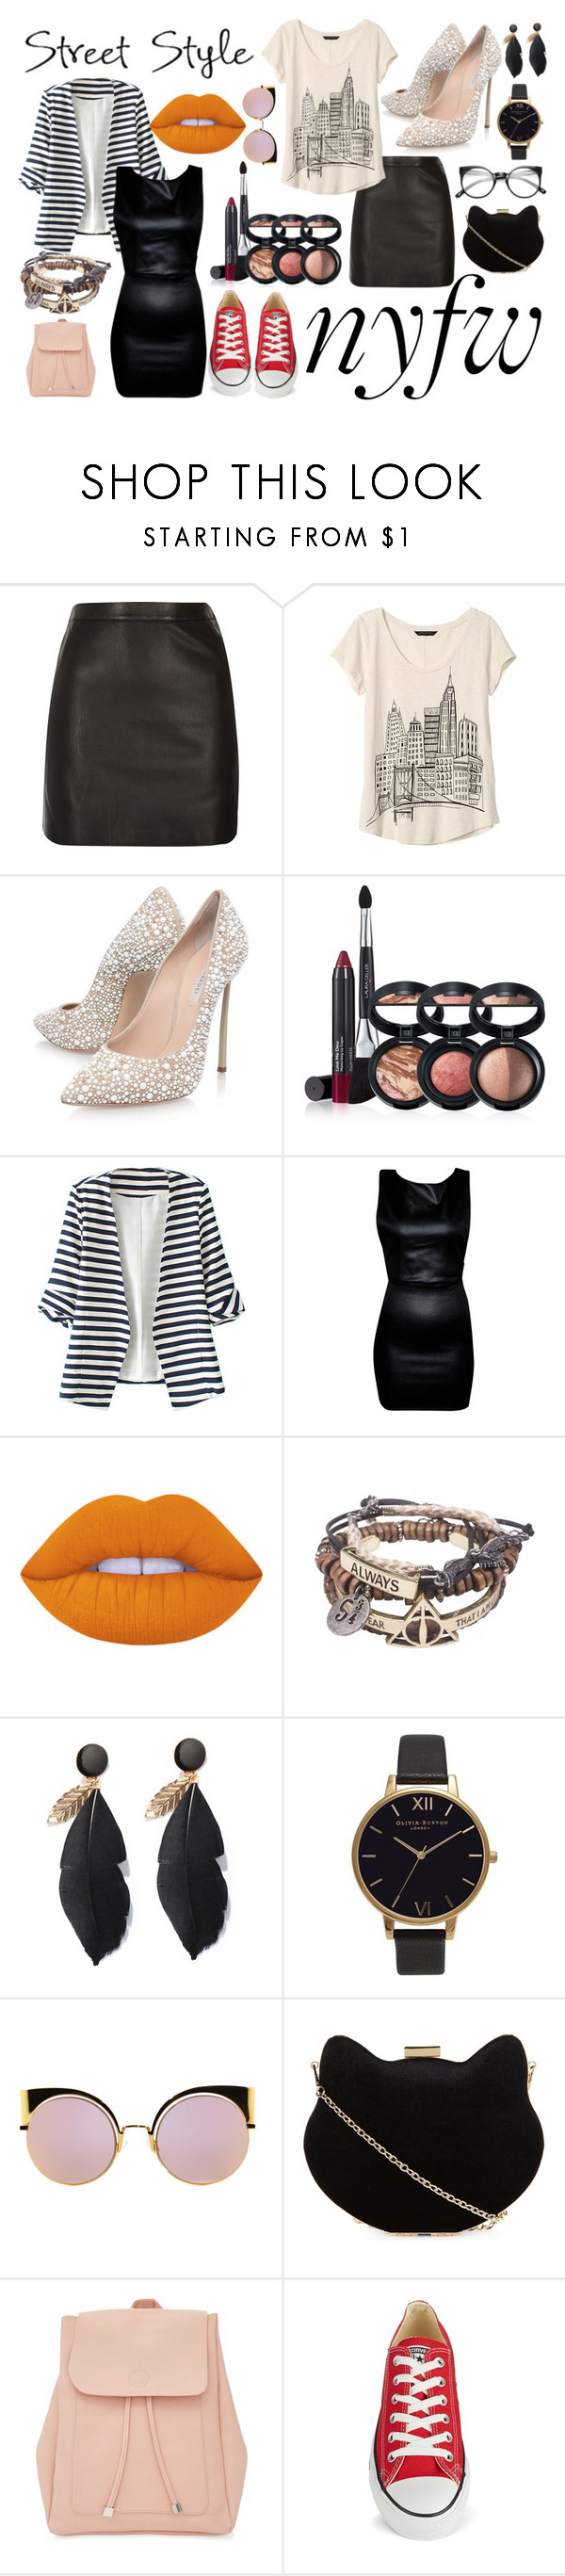 """Street Style"" by minekun ❤ liked on Polyvore featuring River Island, Banana Republic, Casadei, Laura Geller, WithChic, Untitled & Co, Lime Crime, Olivia Burton, Fendi and New Look"